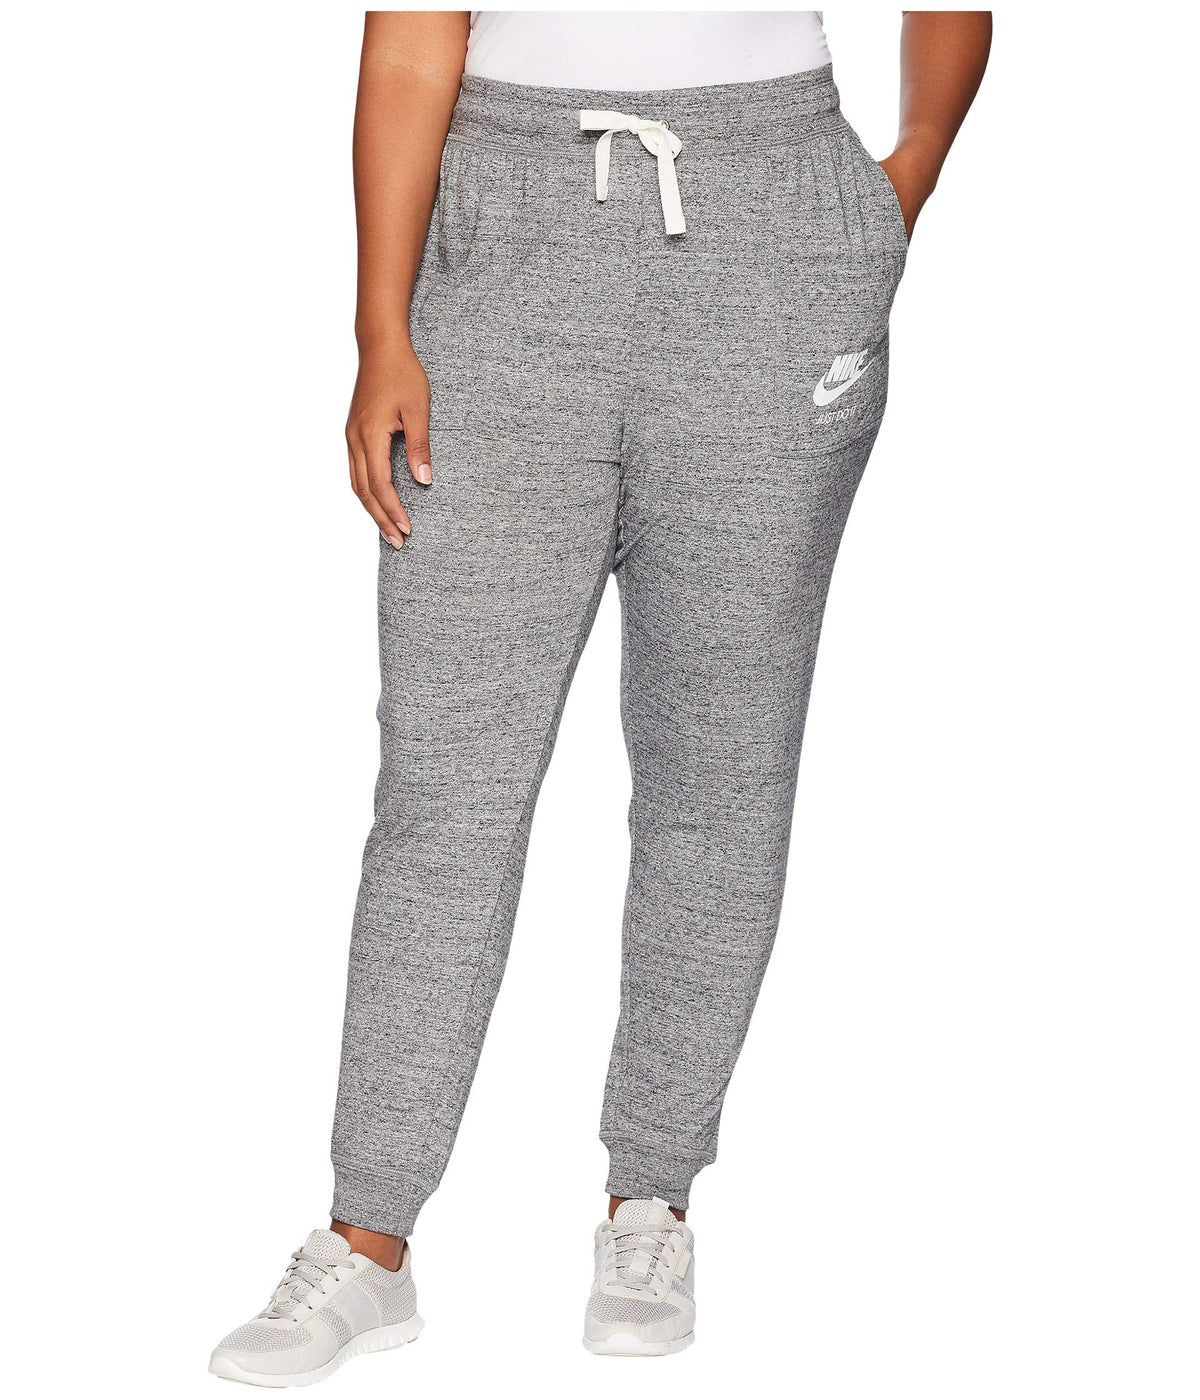 Plus Size Gym Vintage Extended Pants